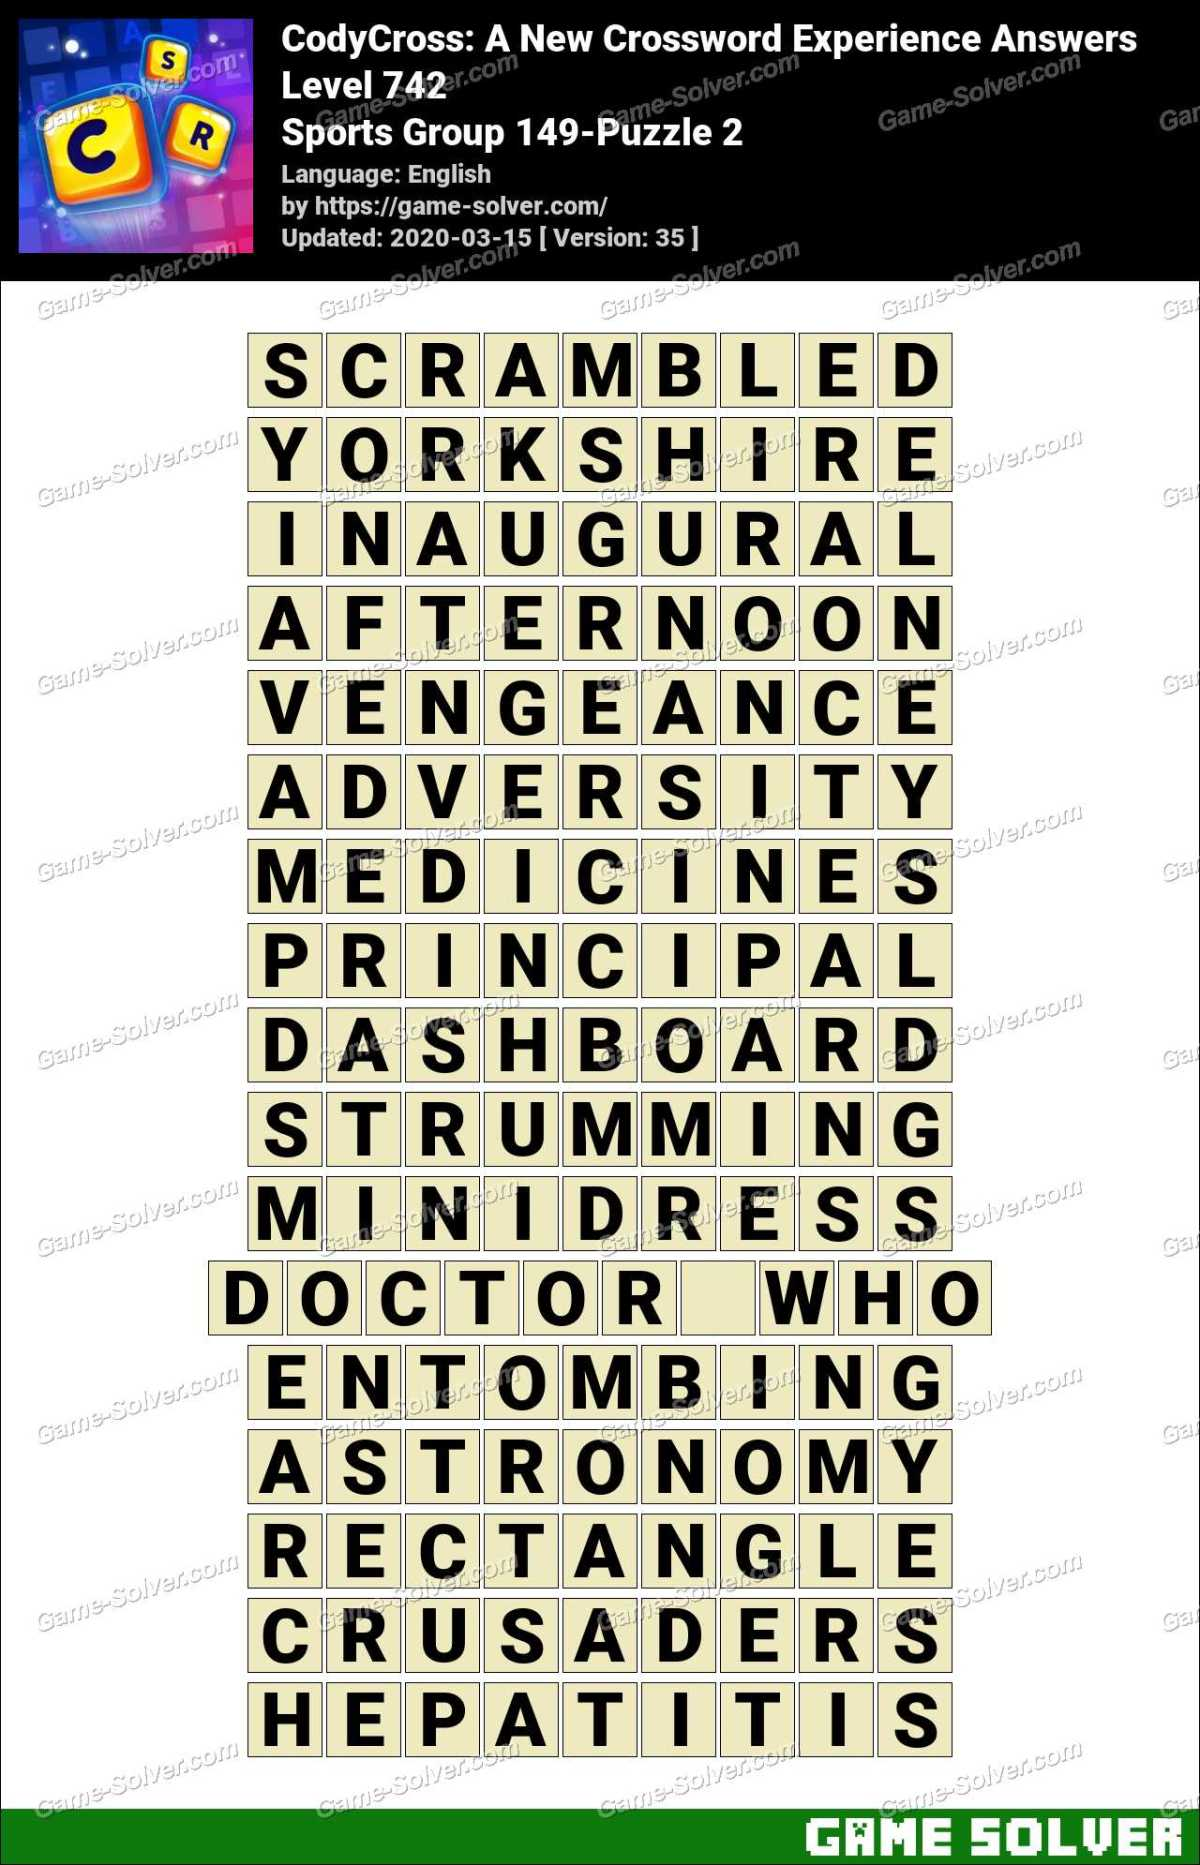 CodyCross Sports Group 149-Puzzle 2 Answers